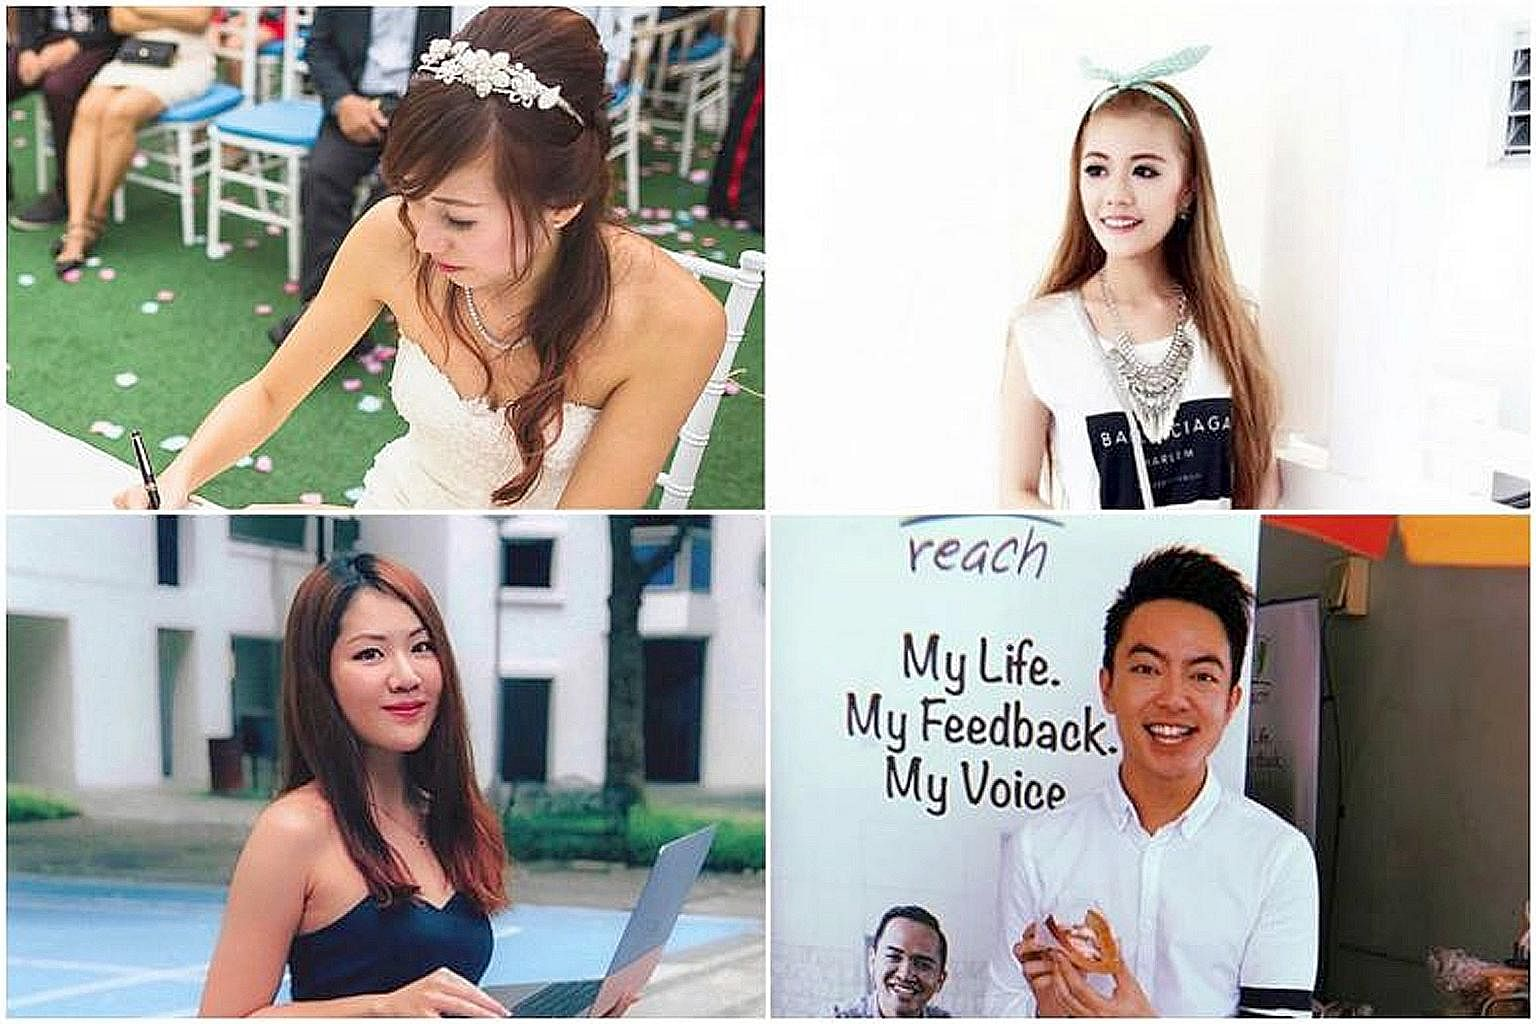 (Clockwise from top left) Social media influencers Cheng Kai Ting, Shanel Lim, Royce Lee and Chelsea Teng were among the more than 50 influencers hired by the Ministry of Finance to promote the Budget process.